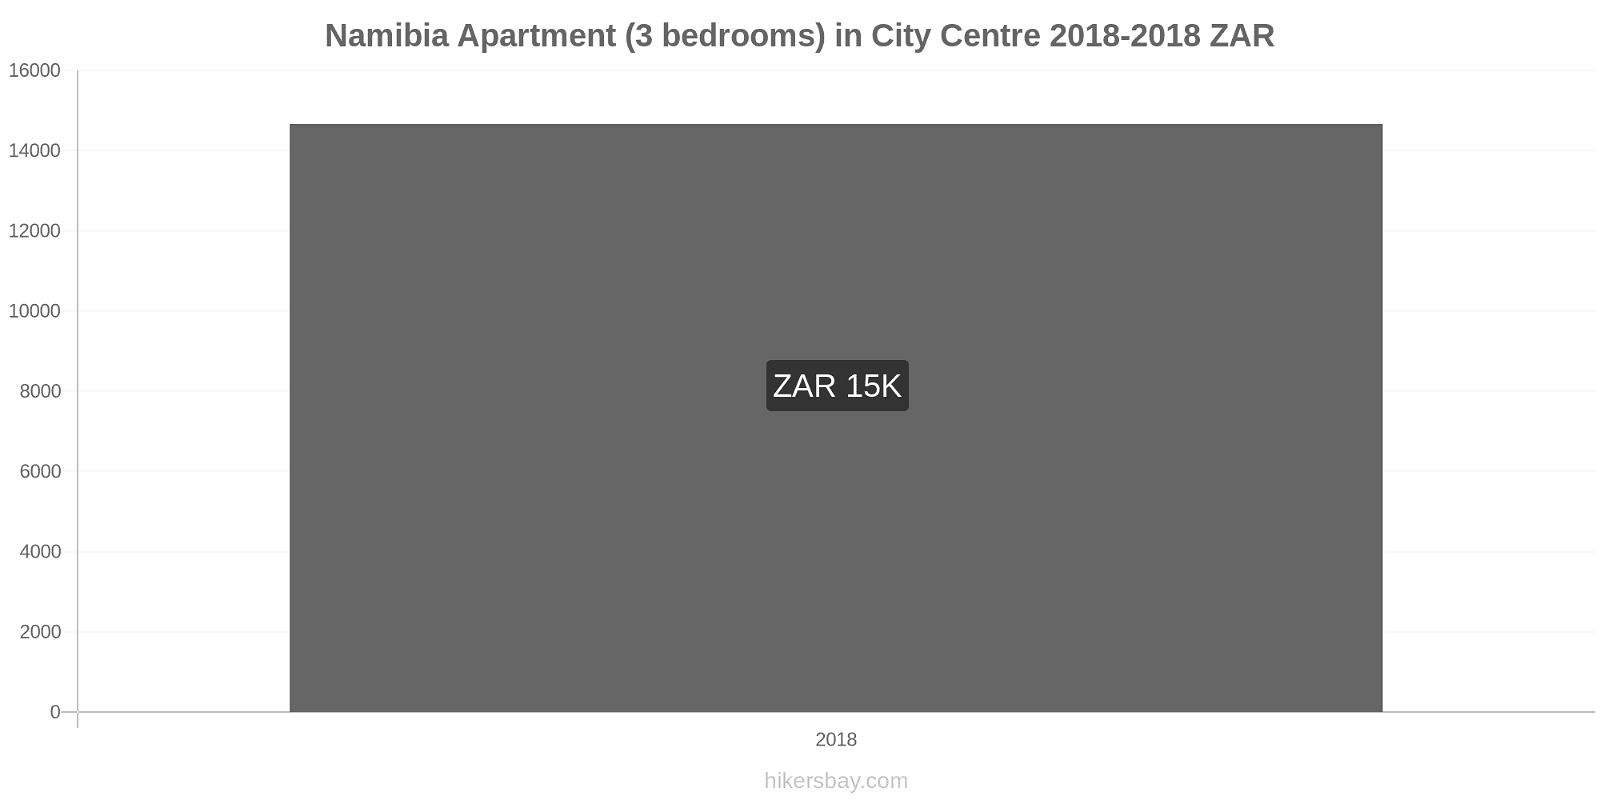 Namibia price changes Apartment (3 bedrooms) in City Centre hikersbay.com